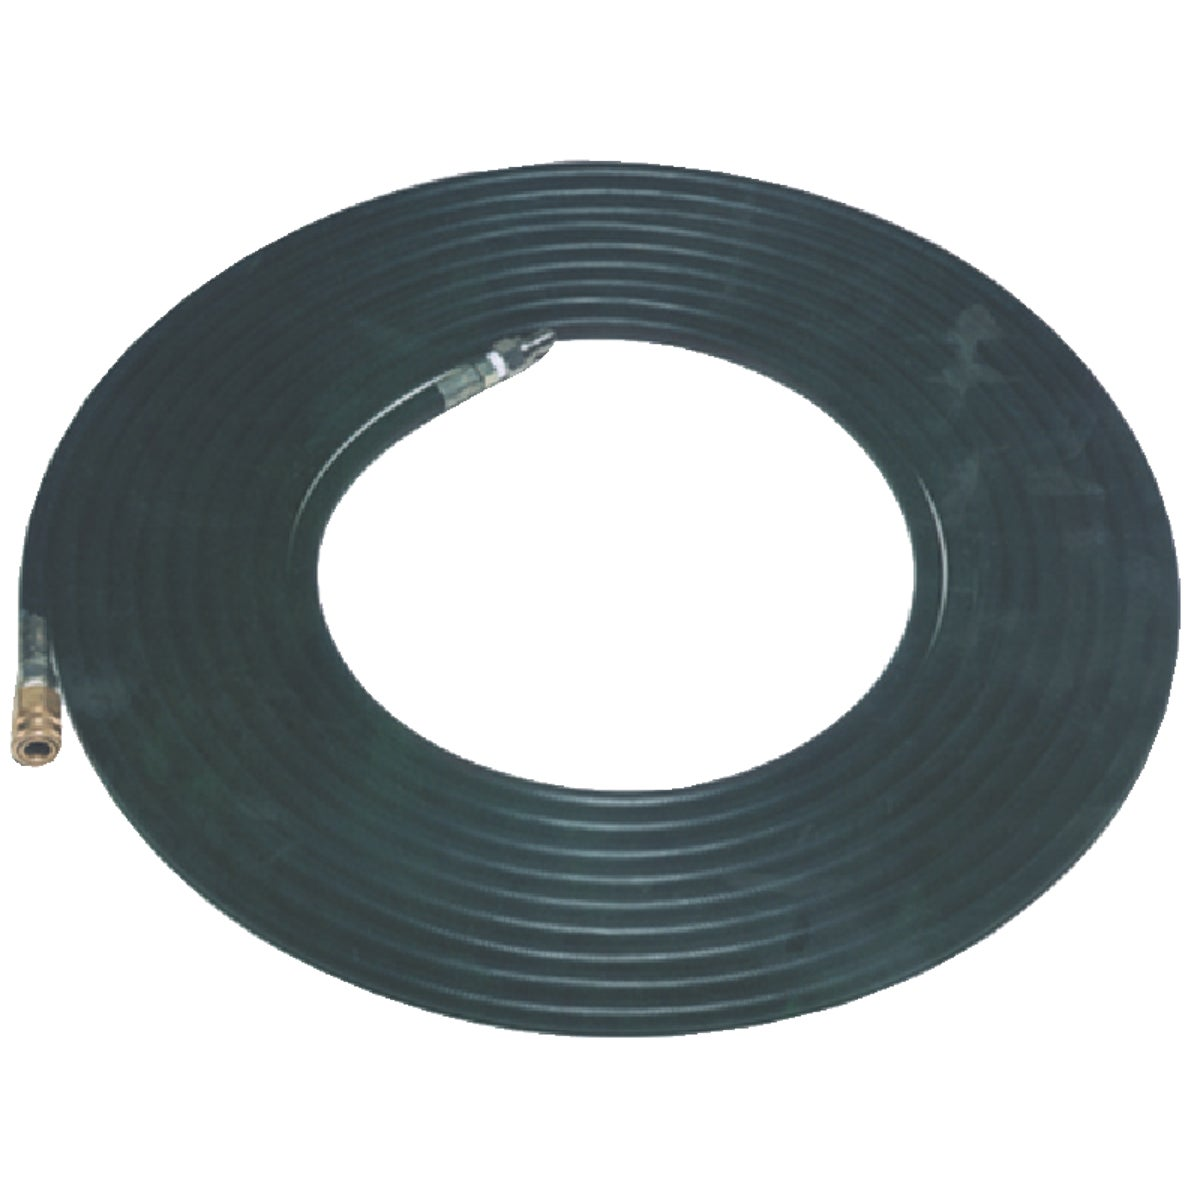 30' EXTENSION HOSE - AW-0015-0167 by Mi T M Corp